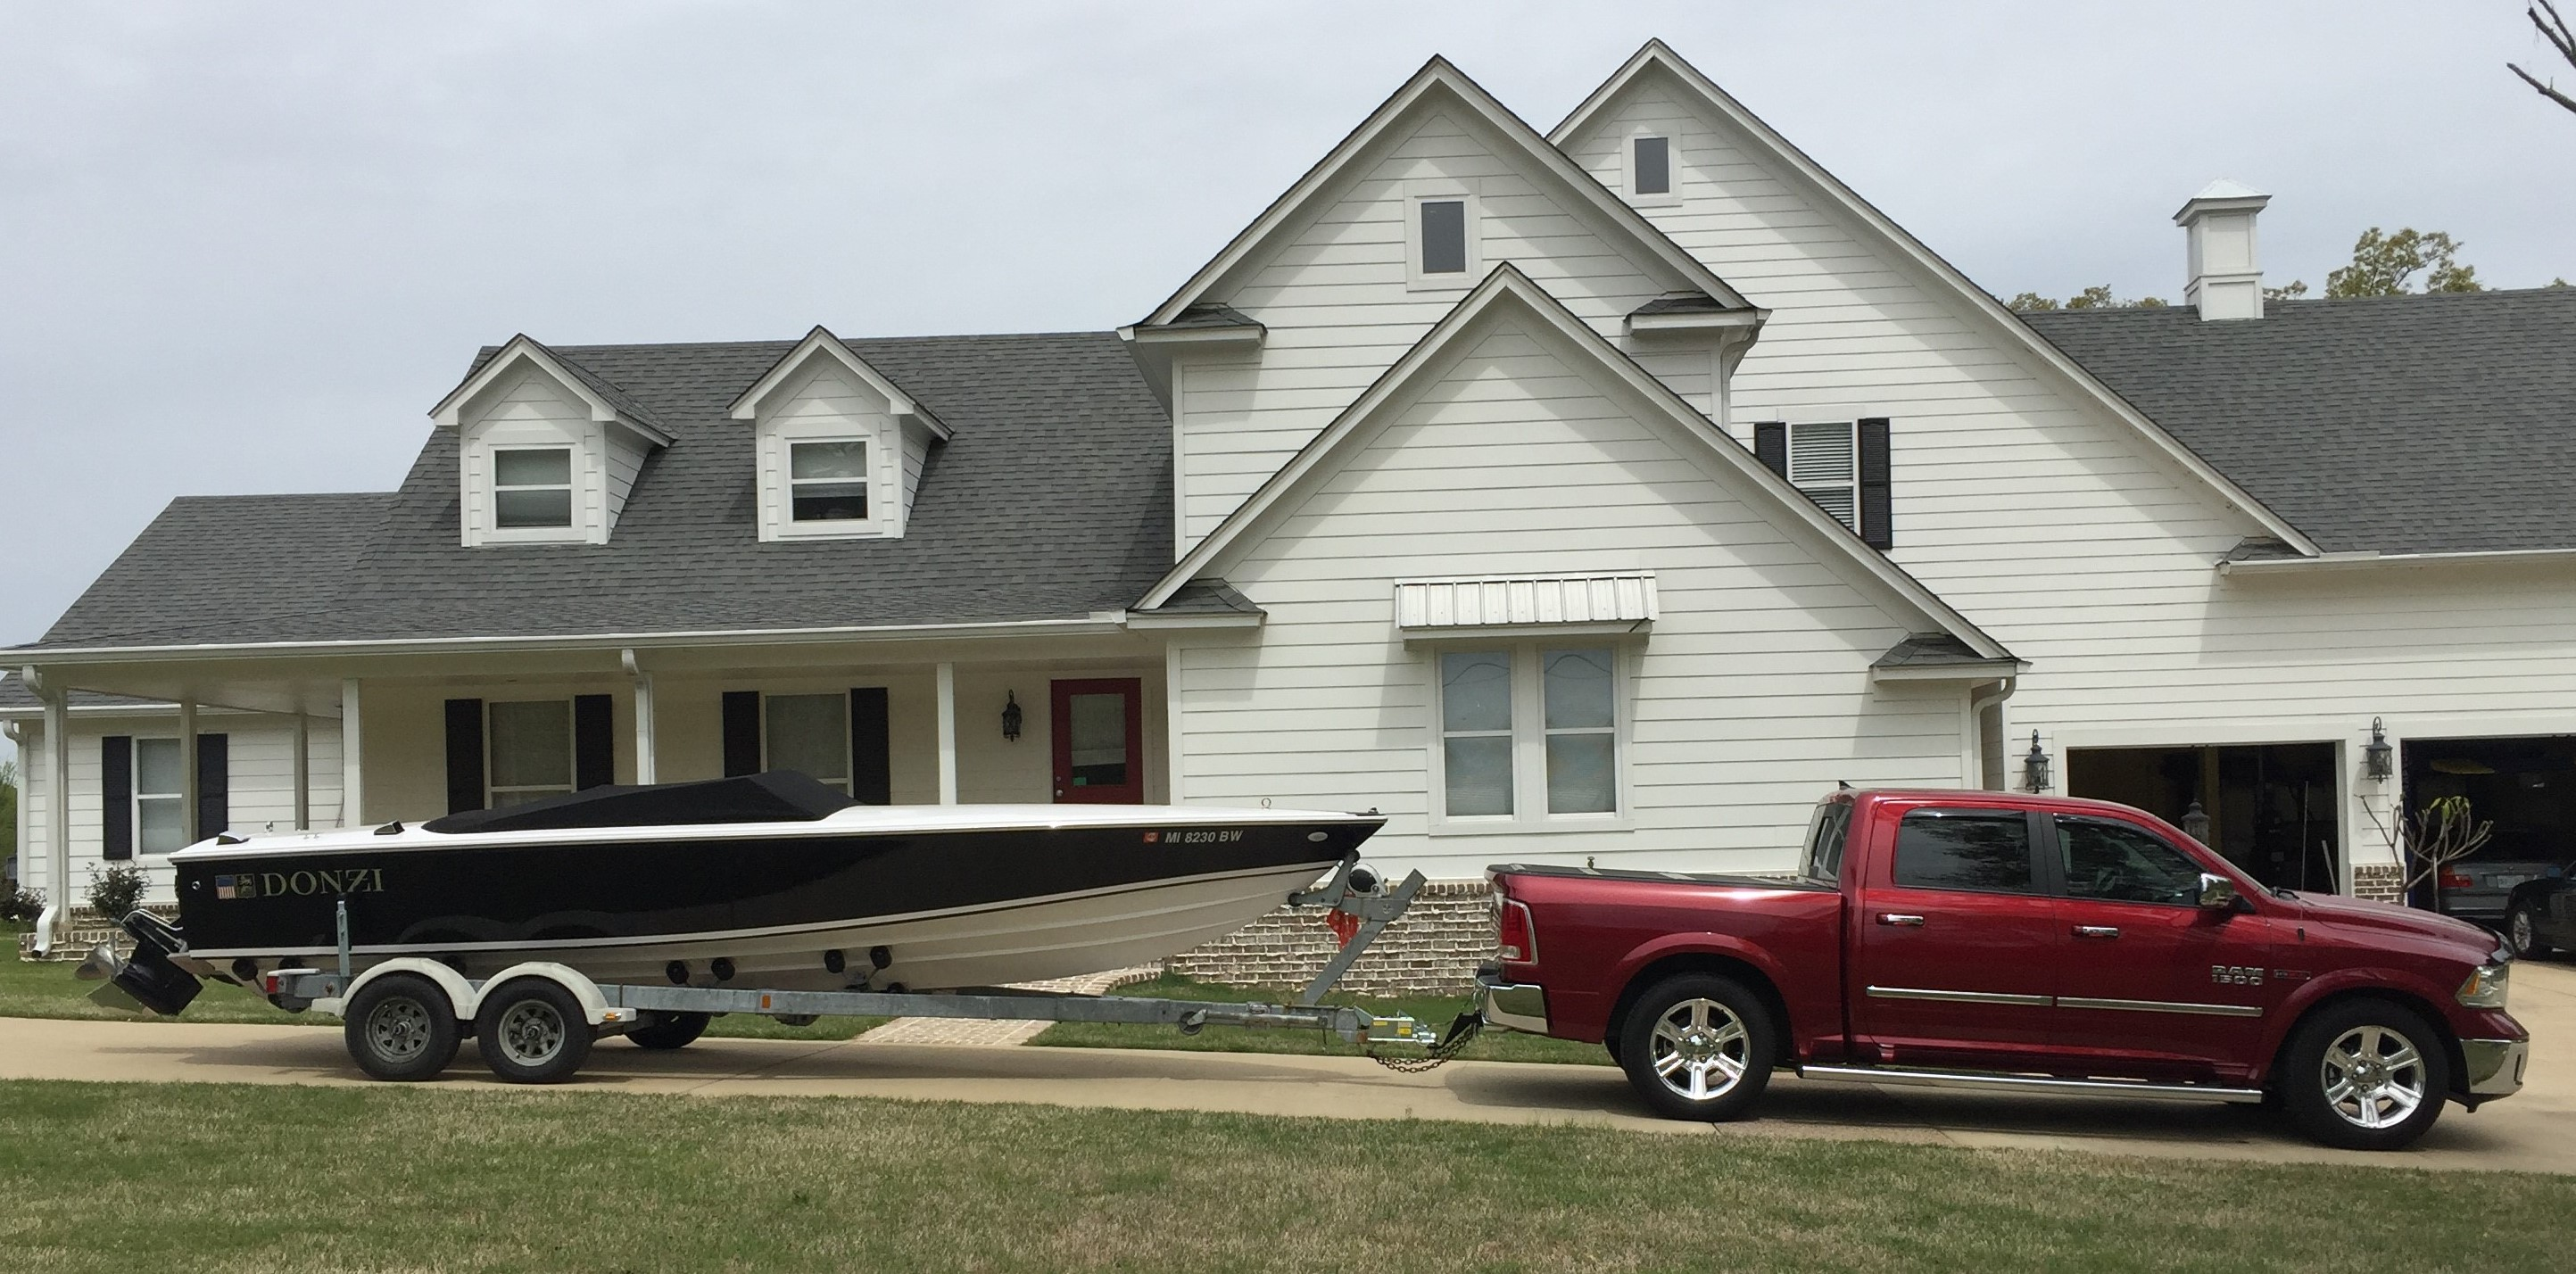 Show your rig towing...-donzi.jpg